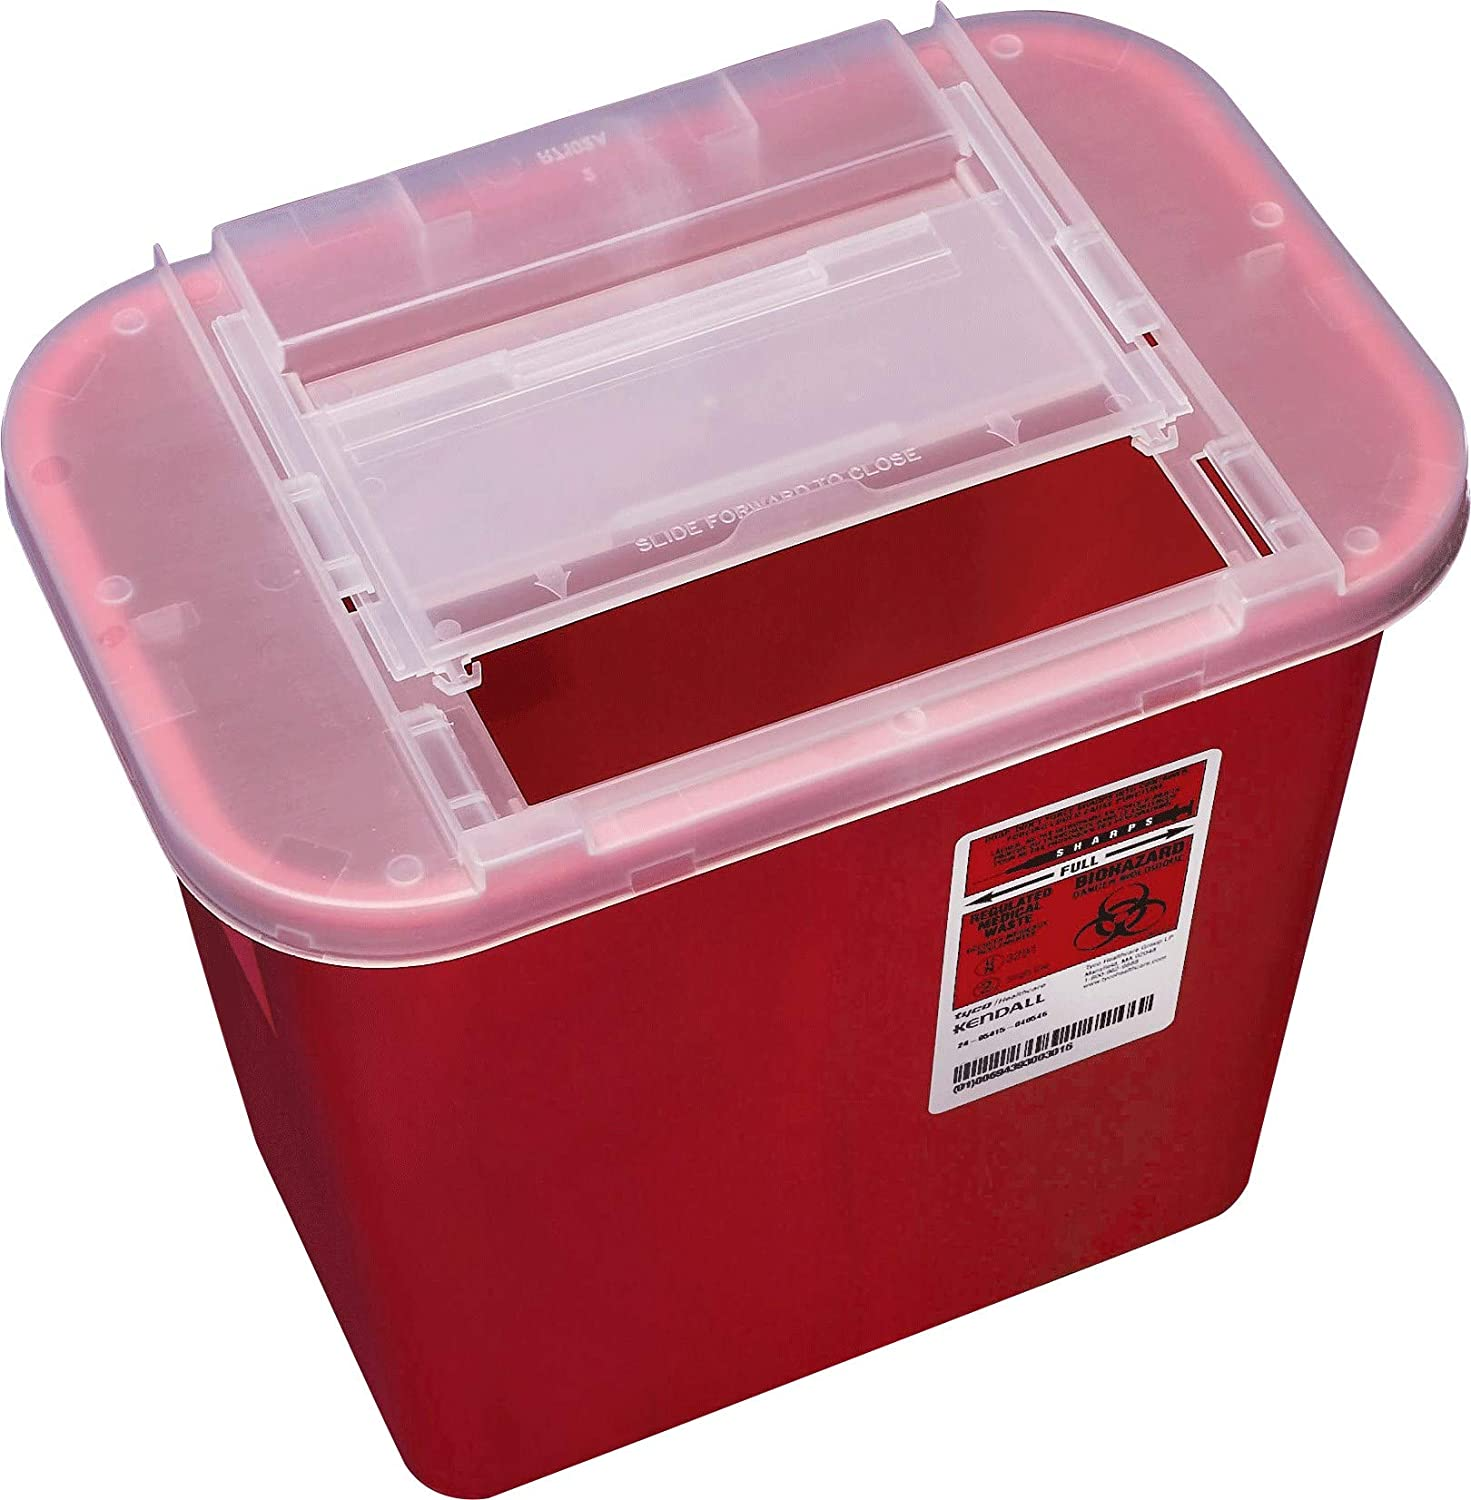 Kendall/Covidien Sharps-A-Gator 31142222 Multi-Purpose Sharps Container. 1Count: Health & Personal Care